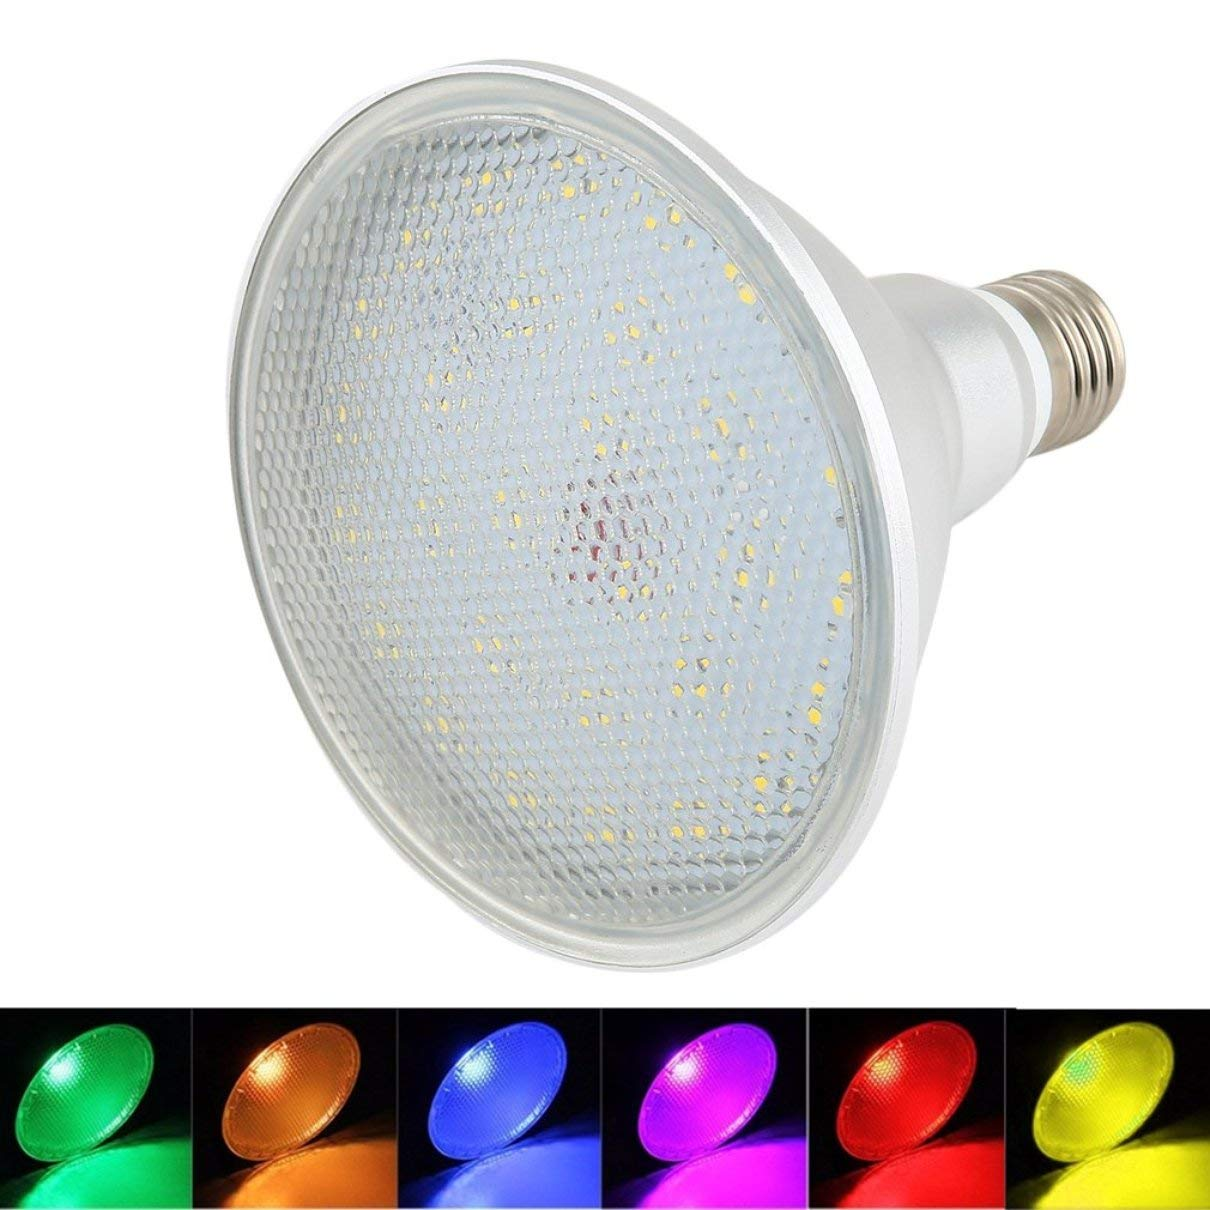 Amazon.com : Huldaqueen 20W LED RGB Par38 LED Spot RGB High Brightness Color Changing Lampada LED Bombillas LED Lighting Flood Lamp Remote Control : Garden ...